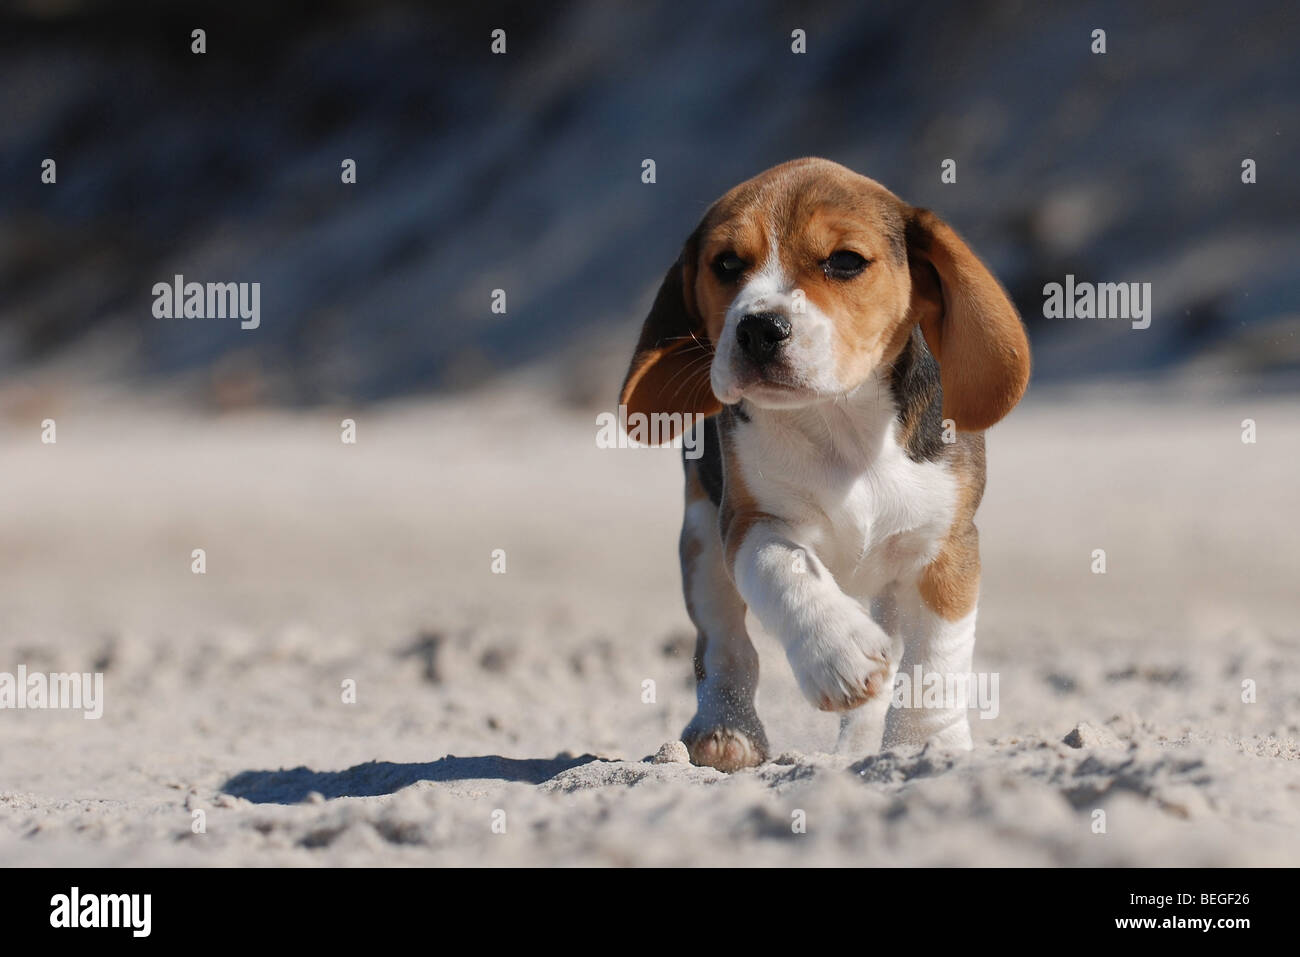 Puppy Funny Beagle High Resolution Stock Photography And Images Alamy